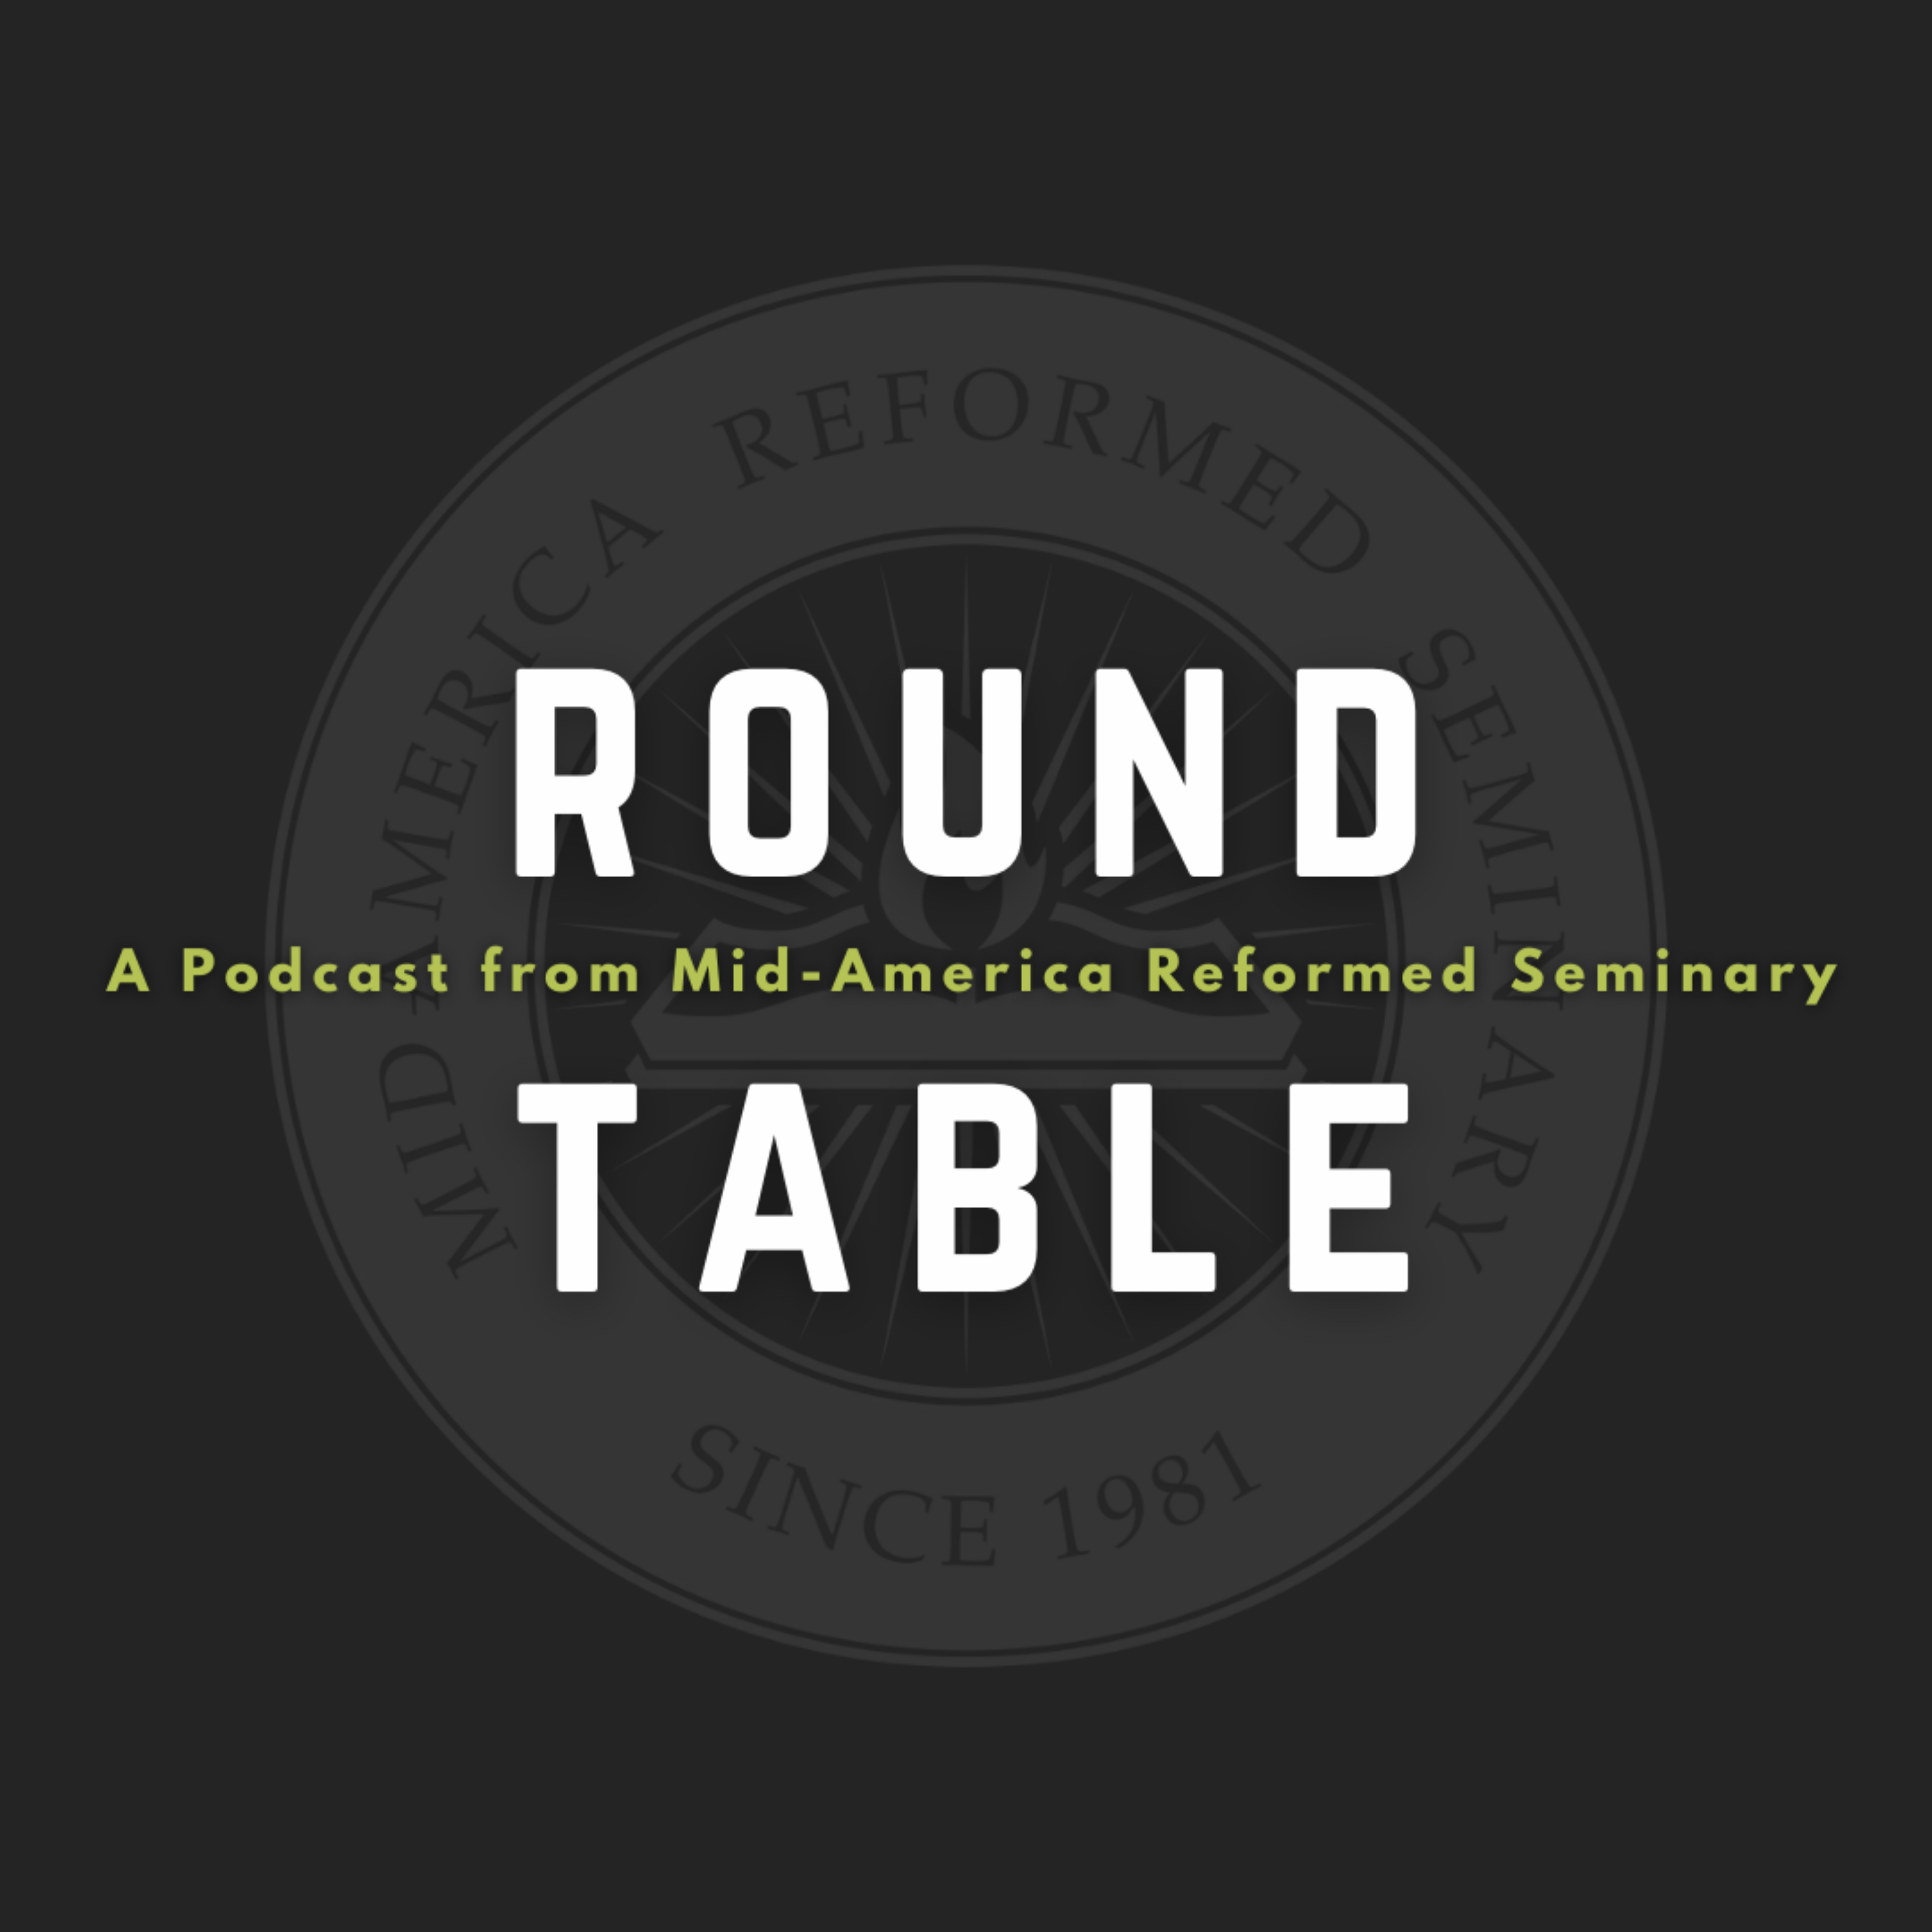 Mid-America Reformed Seminary's Round Table